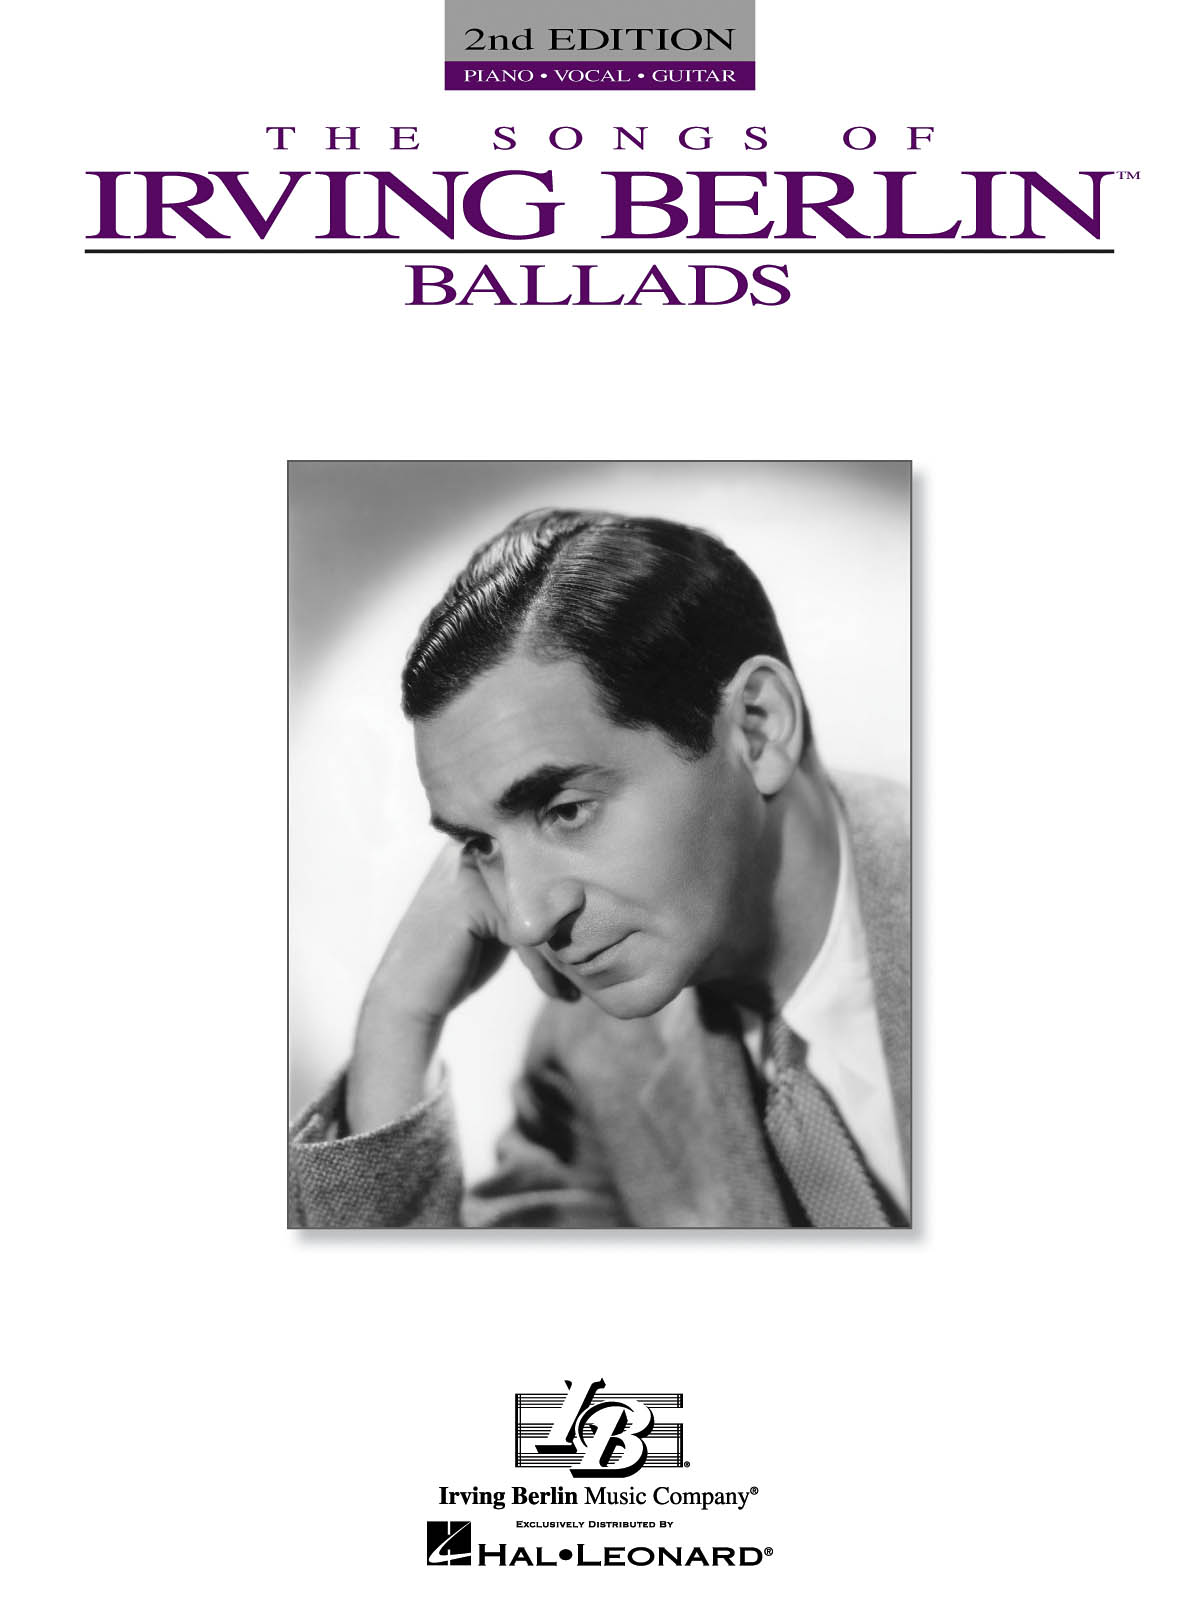 Irving Berlin: Irving Berlin - Ballads - 2nd Edition: Piano  Vocal and Guitar: